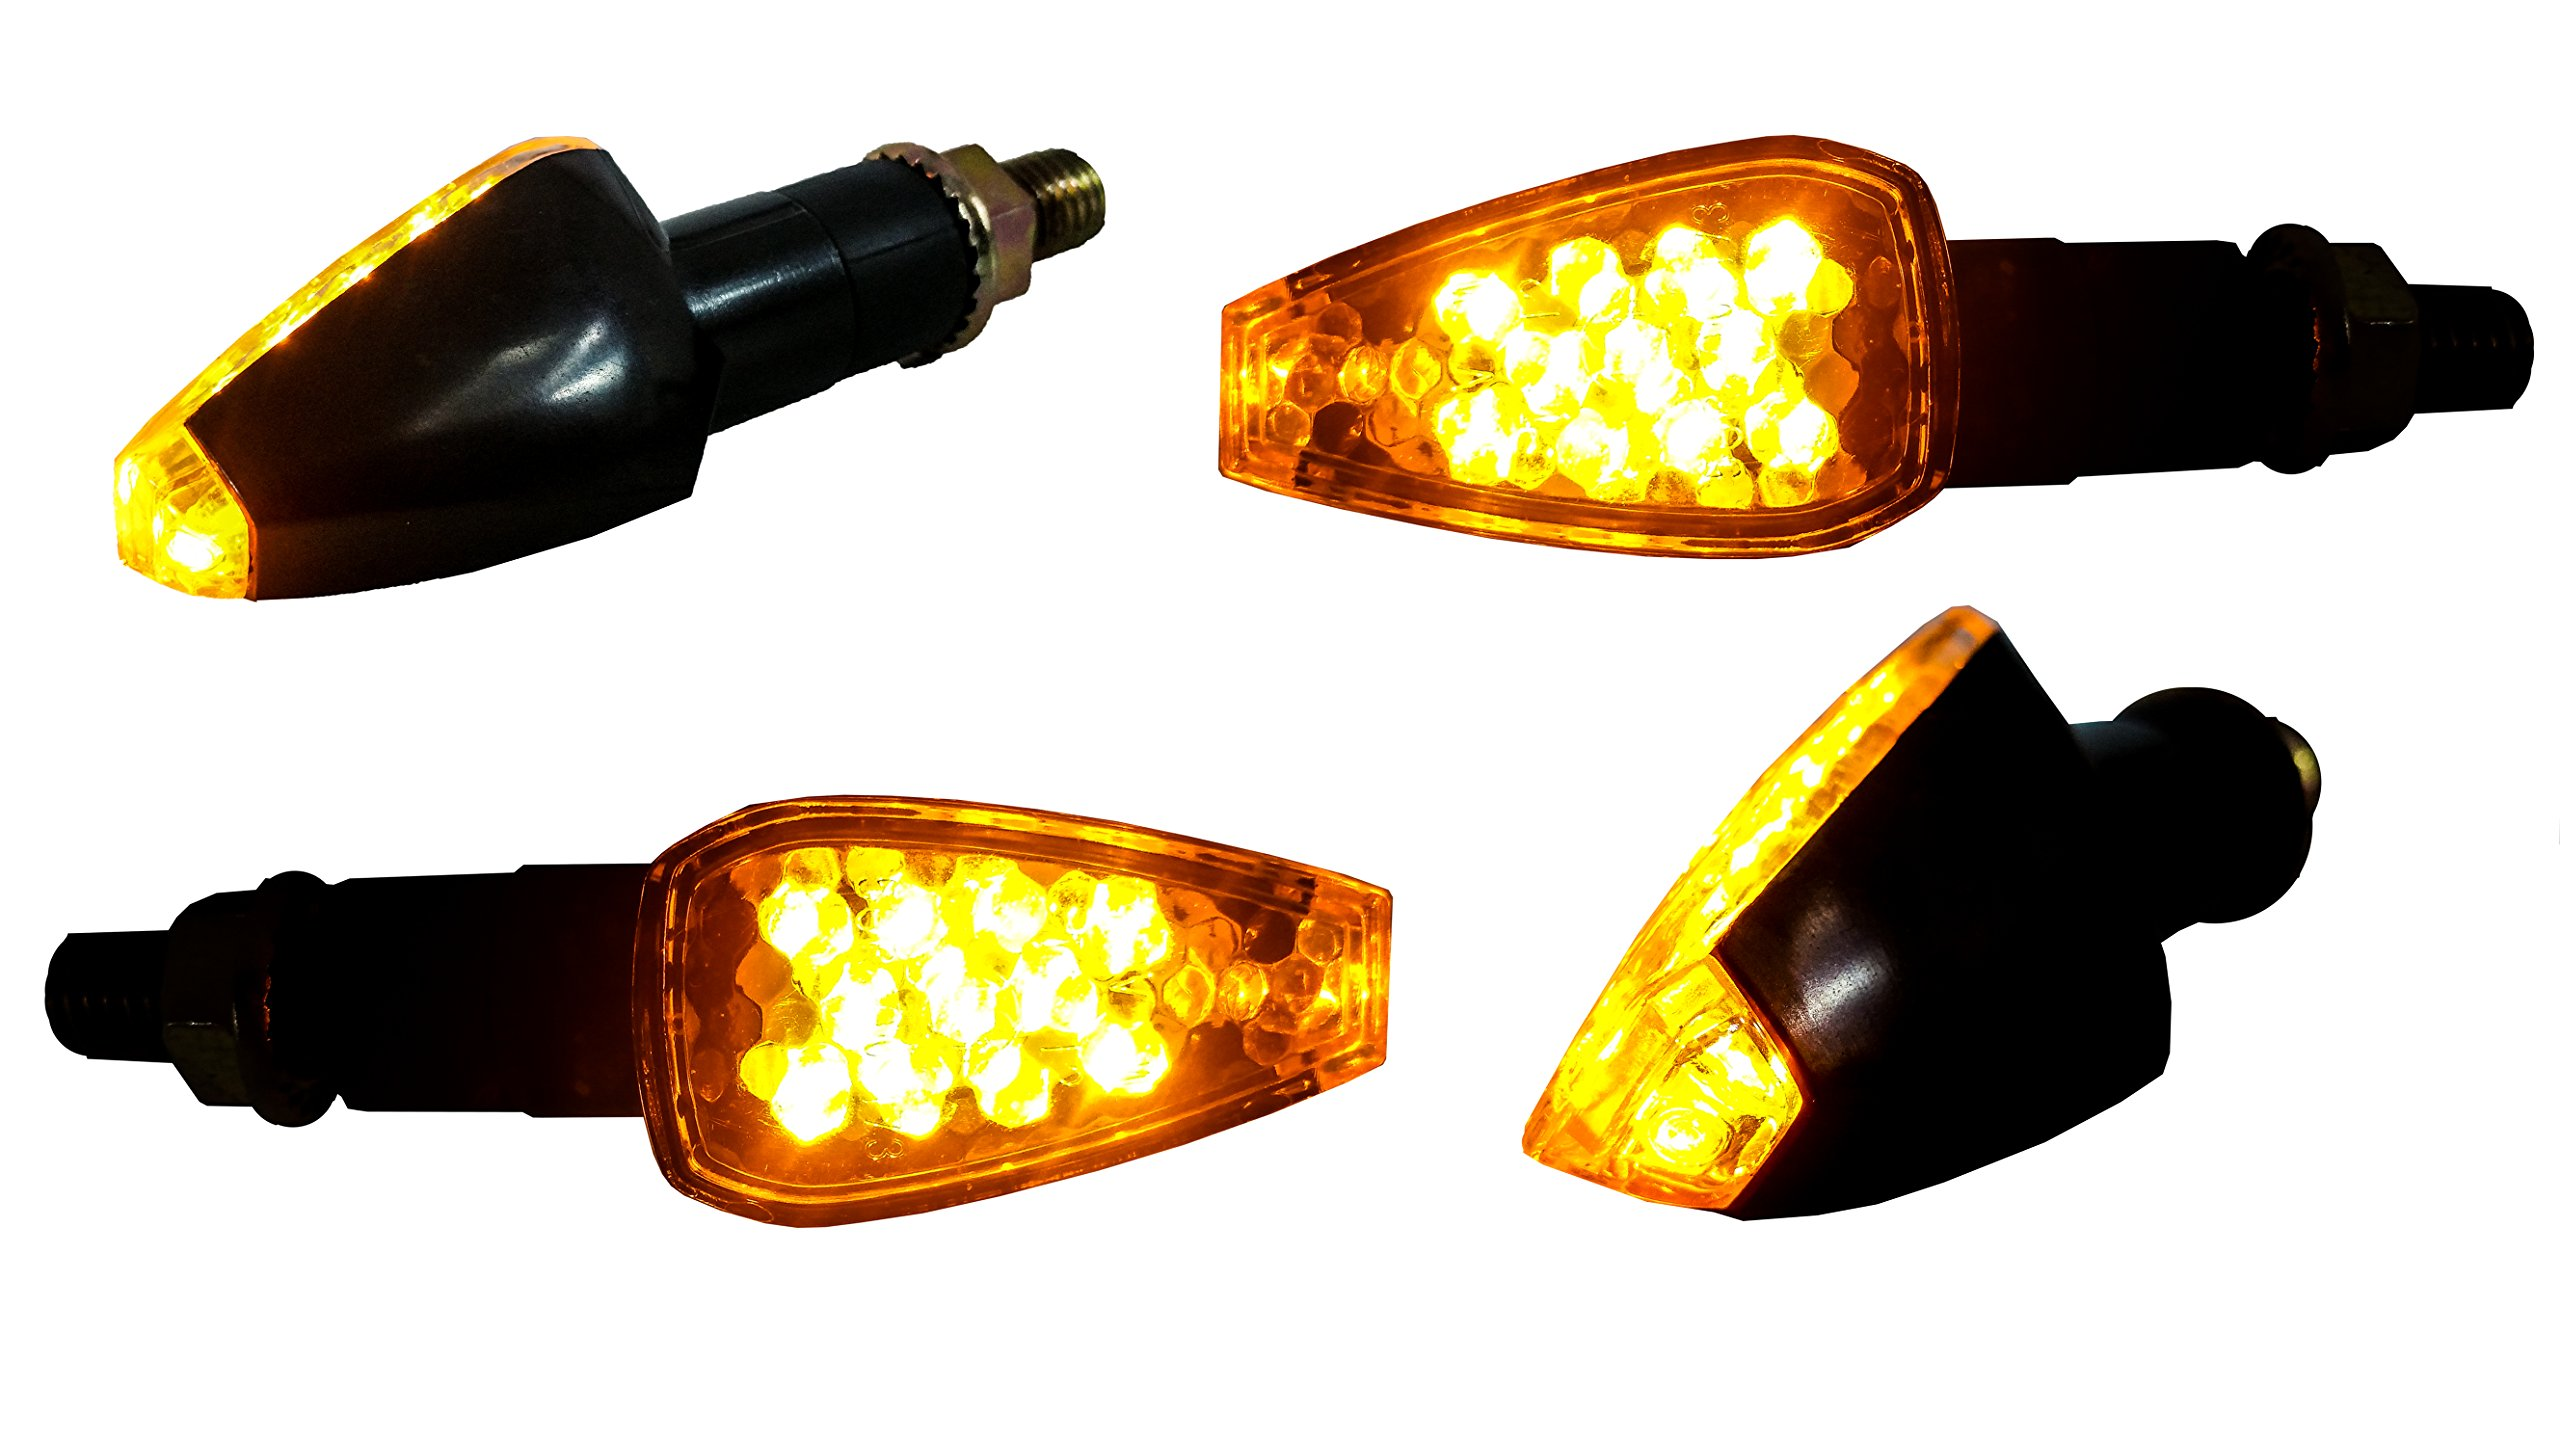 4x Turn Signal LED HONDA Dual Sport Motorcycle dirt bike supermoto light blinker by ozg-motors